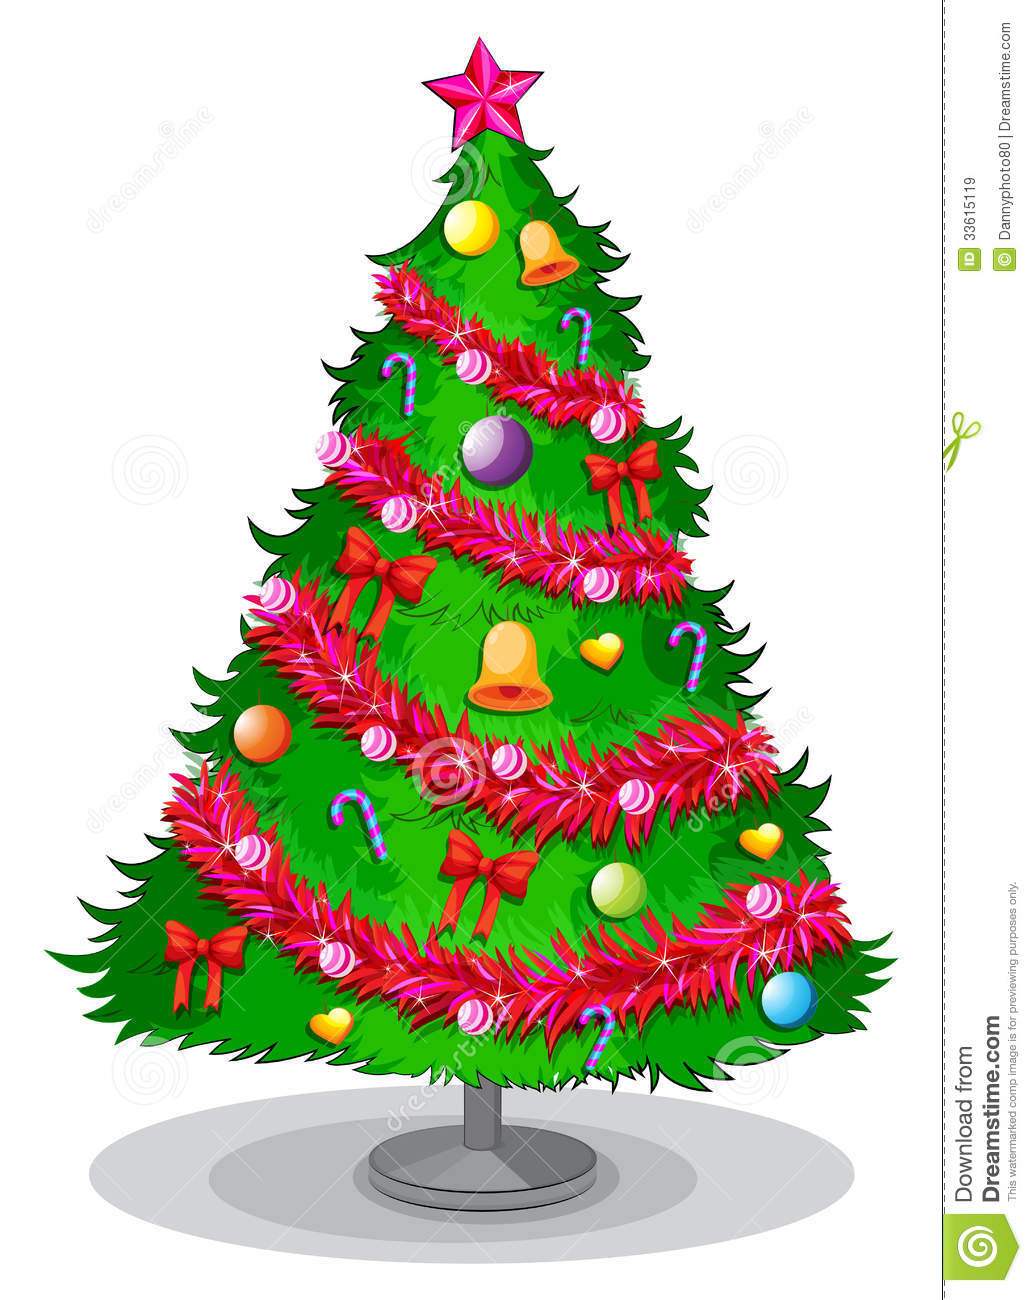 Colorful christmas tree wallpapers driverlayer search engine